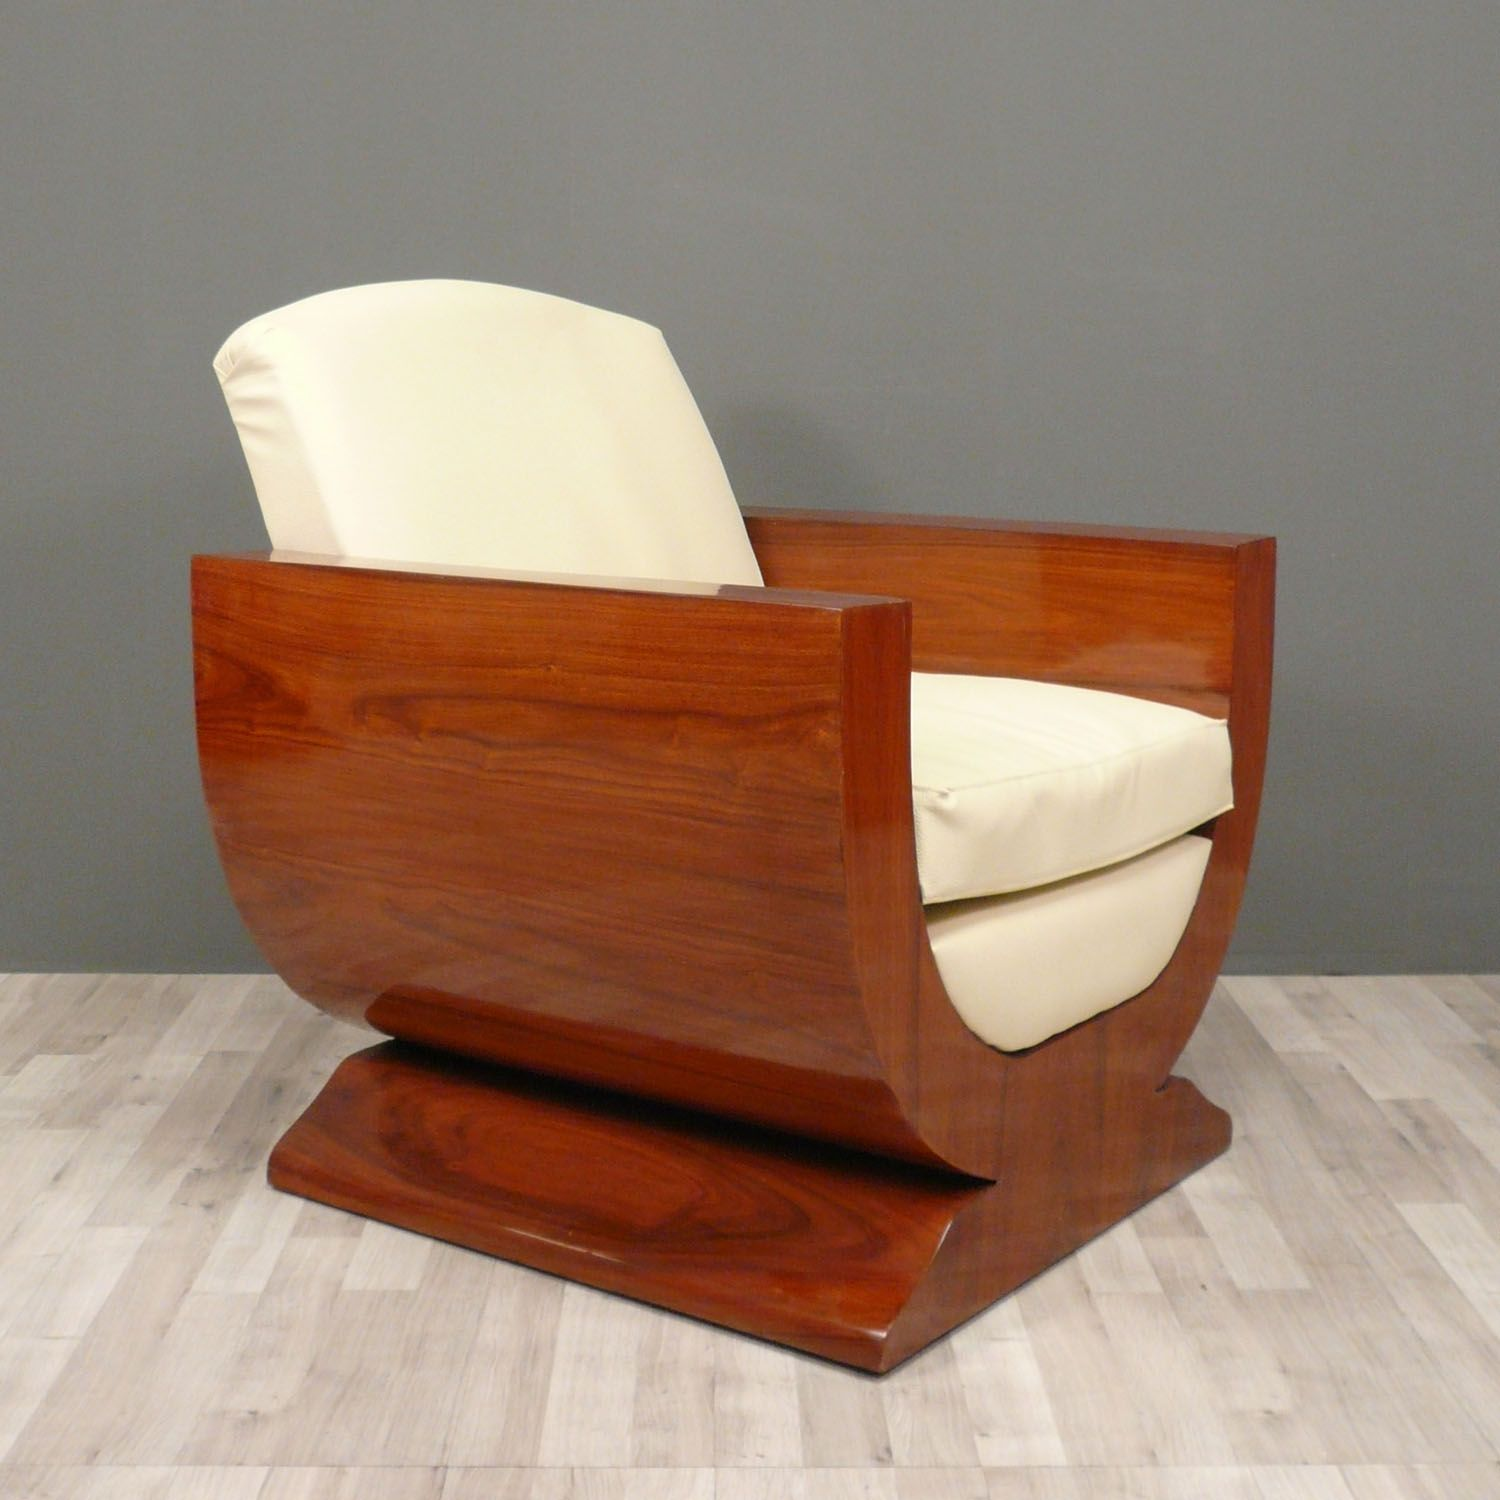 art moderne furniture. general pair of armchairs art deco furniture resourcedir home directory moderne s